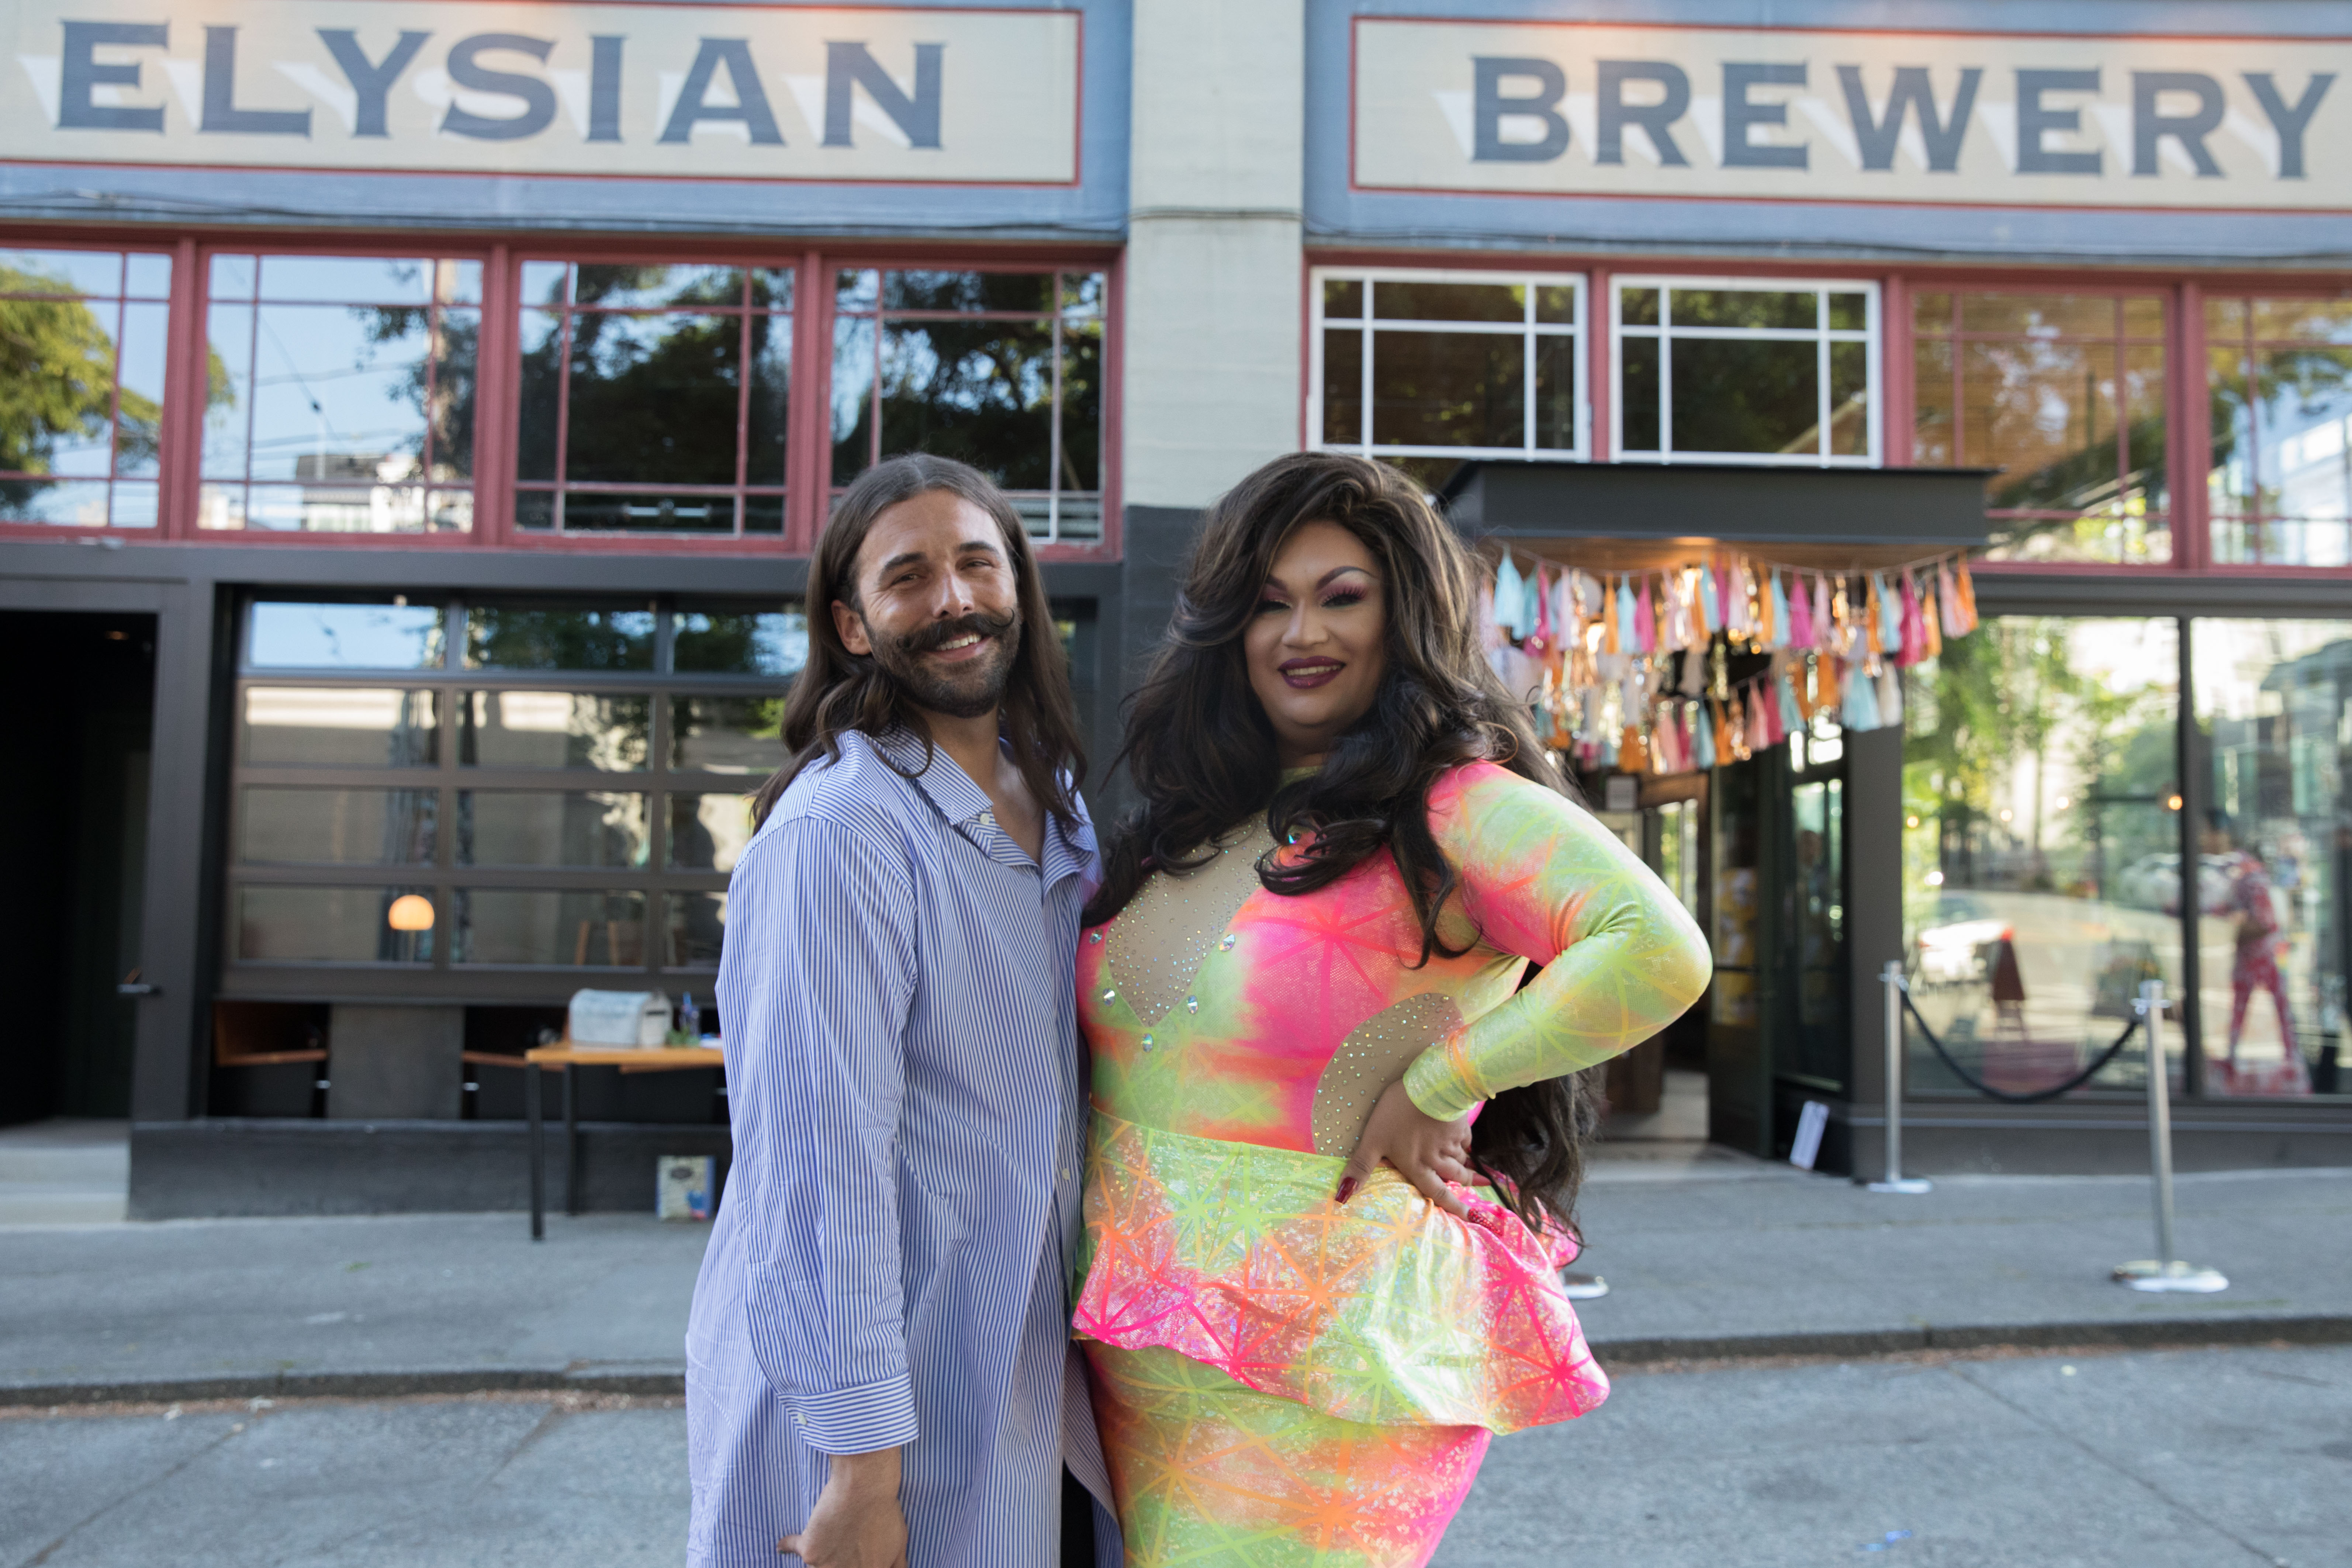 Jonathan Van Ness (left) poses with Ada Vox (right) at the #MarryUsJVN Wedding at Elysian Brewing's Capitol Hill brewpub on June 4, 2019, in Seattle. (Photo by Matt Mills McKnight/Invision for Elysian Brewing/AP Images)